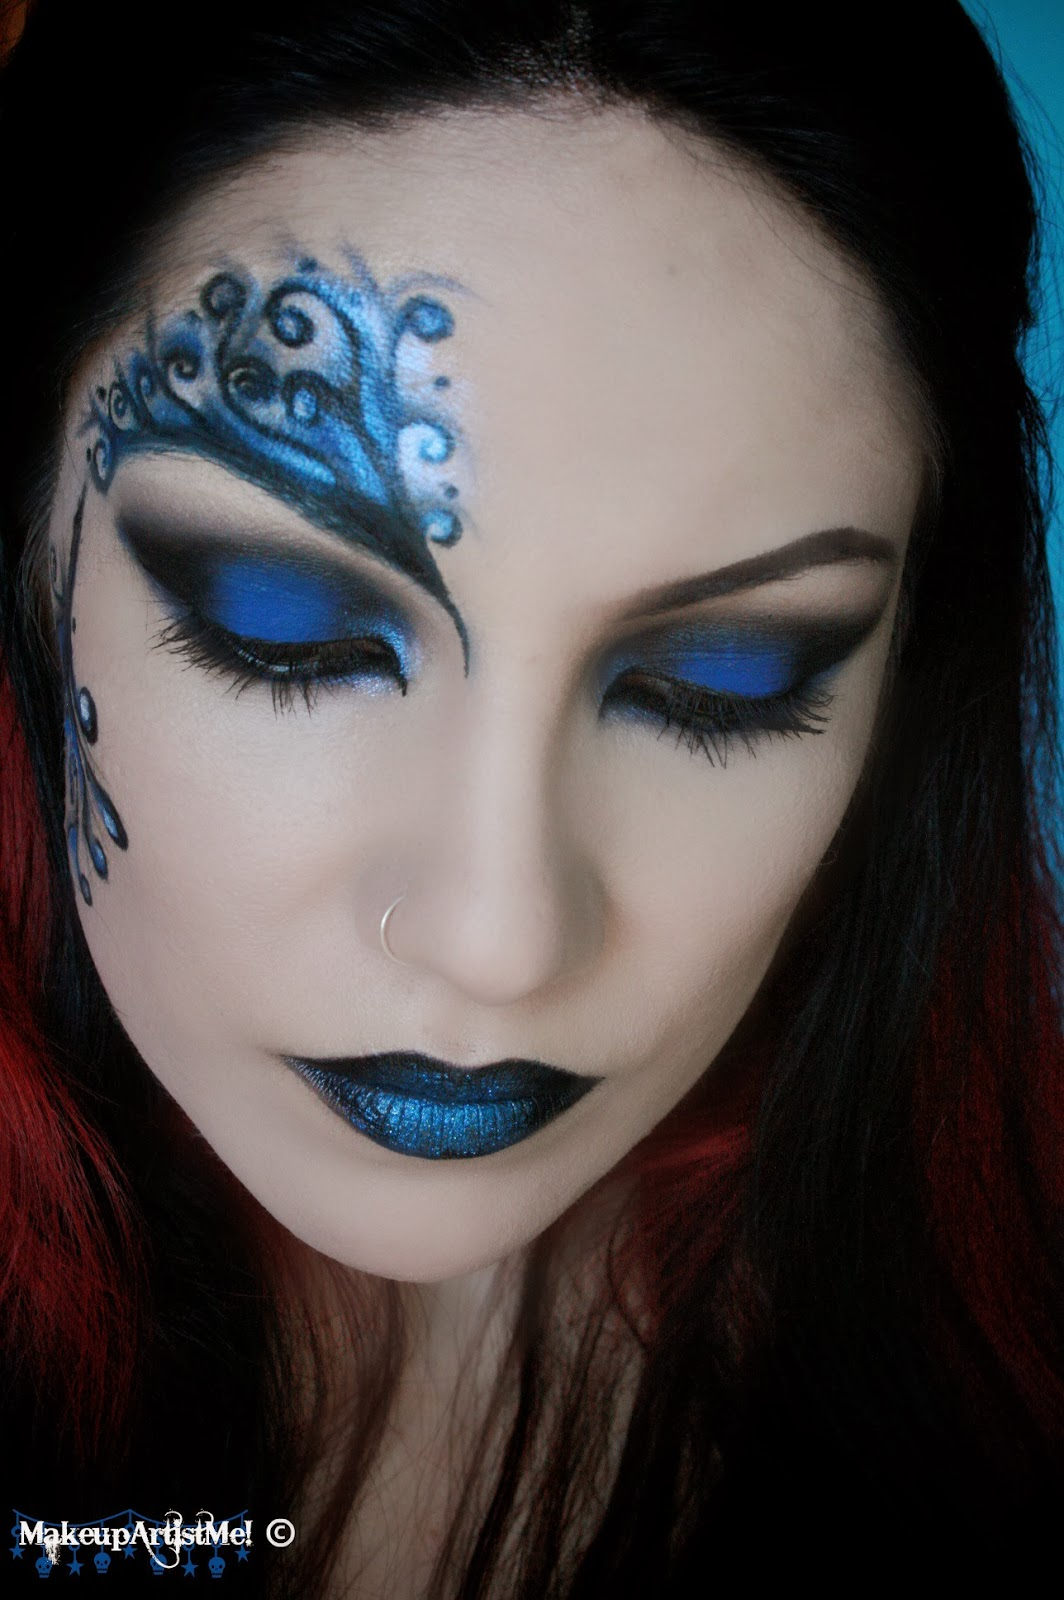 Make Up Tutorials Youtube: Make-up Artist Me!: Blue Secret- Blue Masquerade Makeup